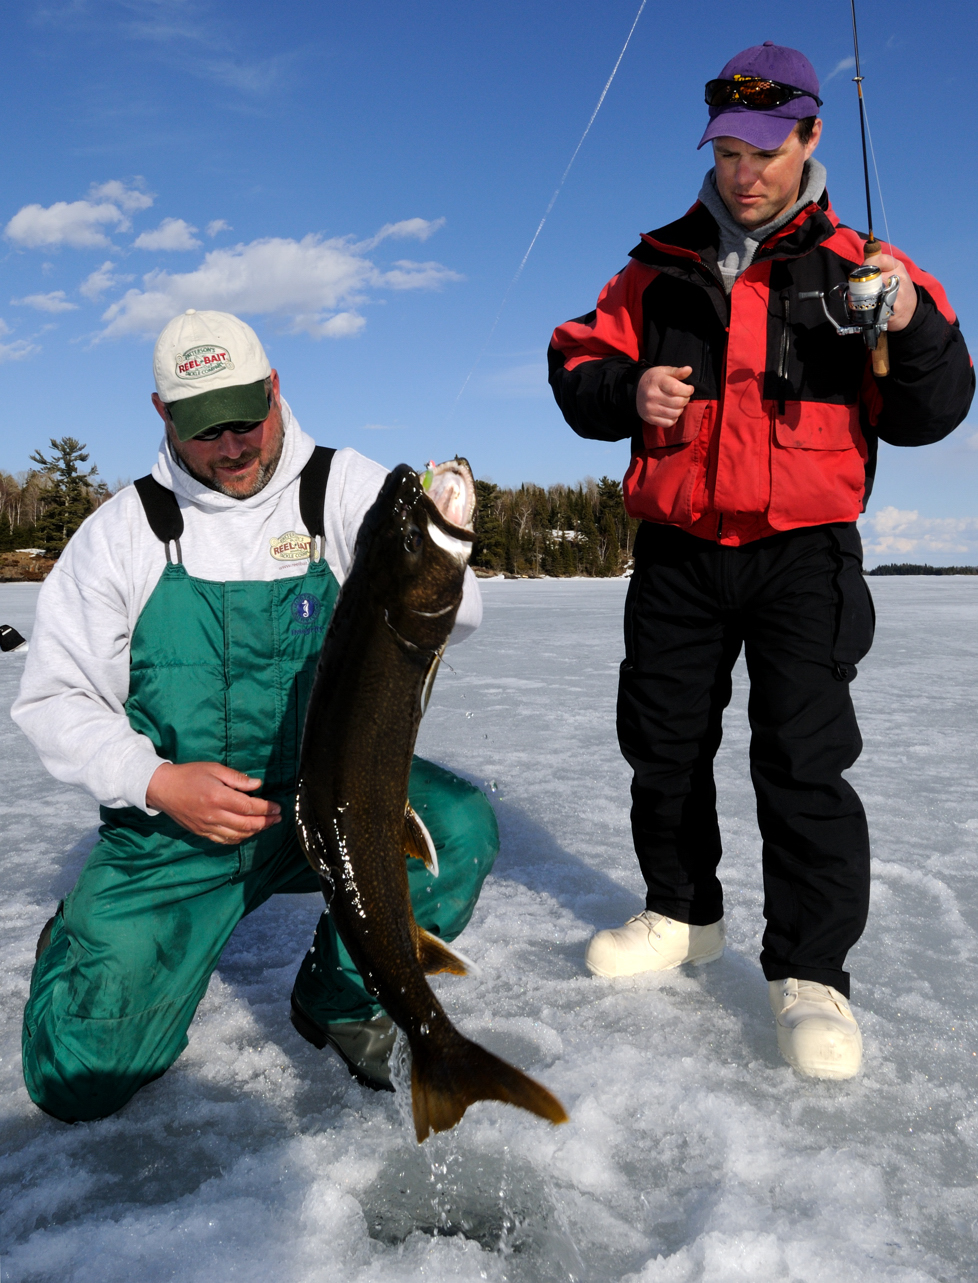 Ice fishing auger dos and don'ts • Outdoor Canada